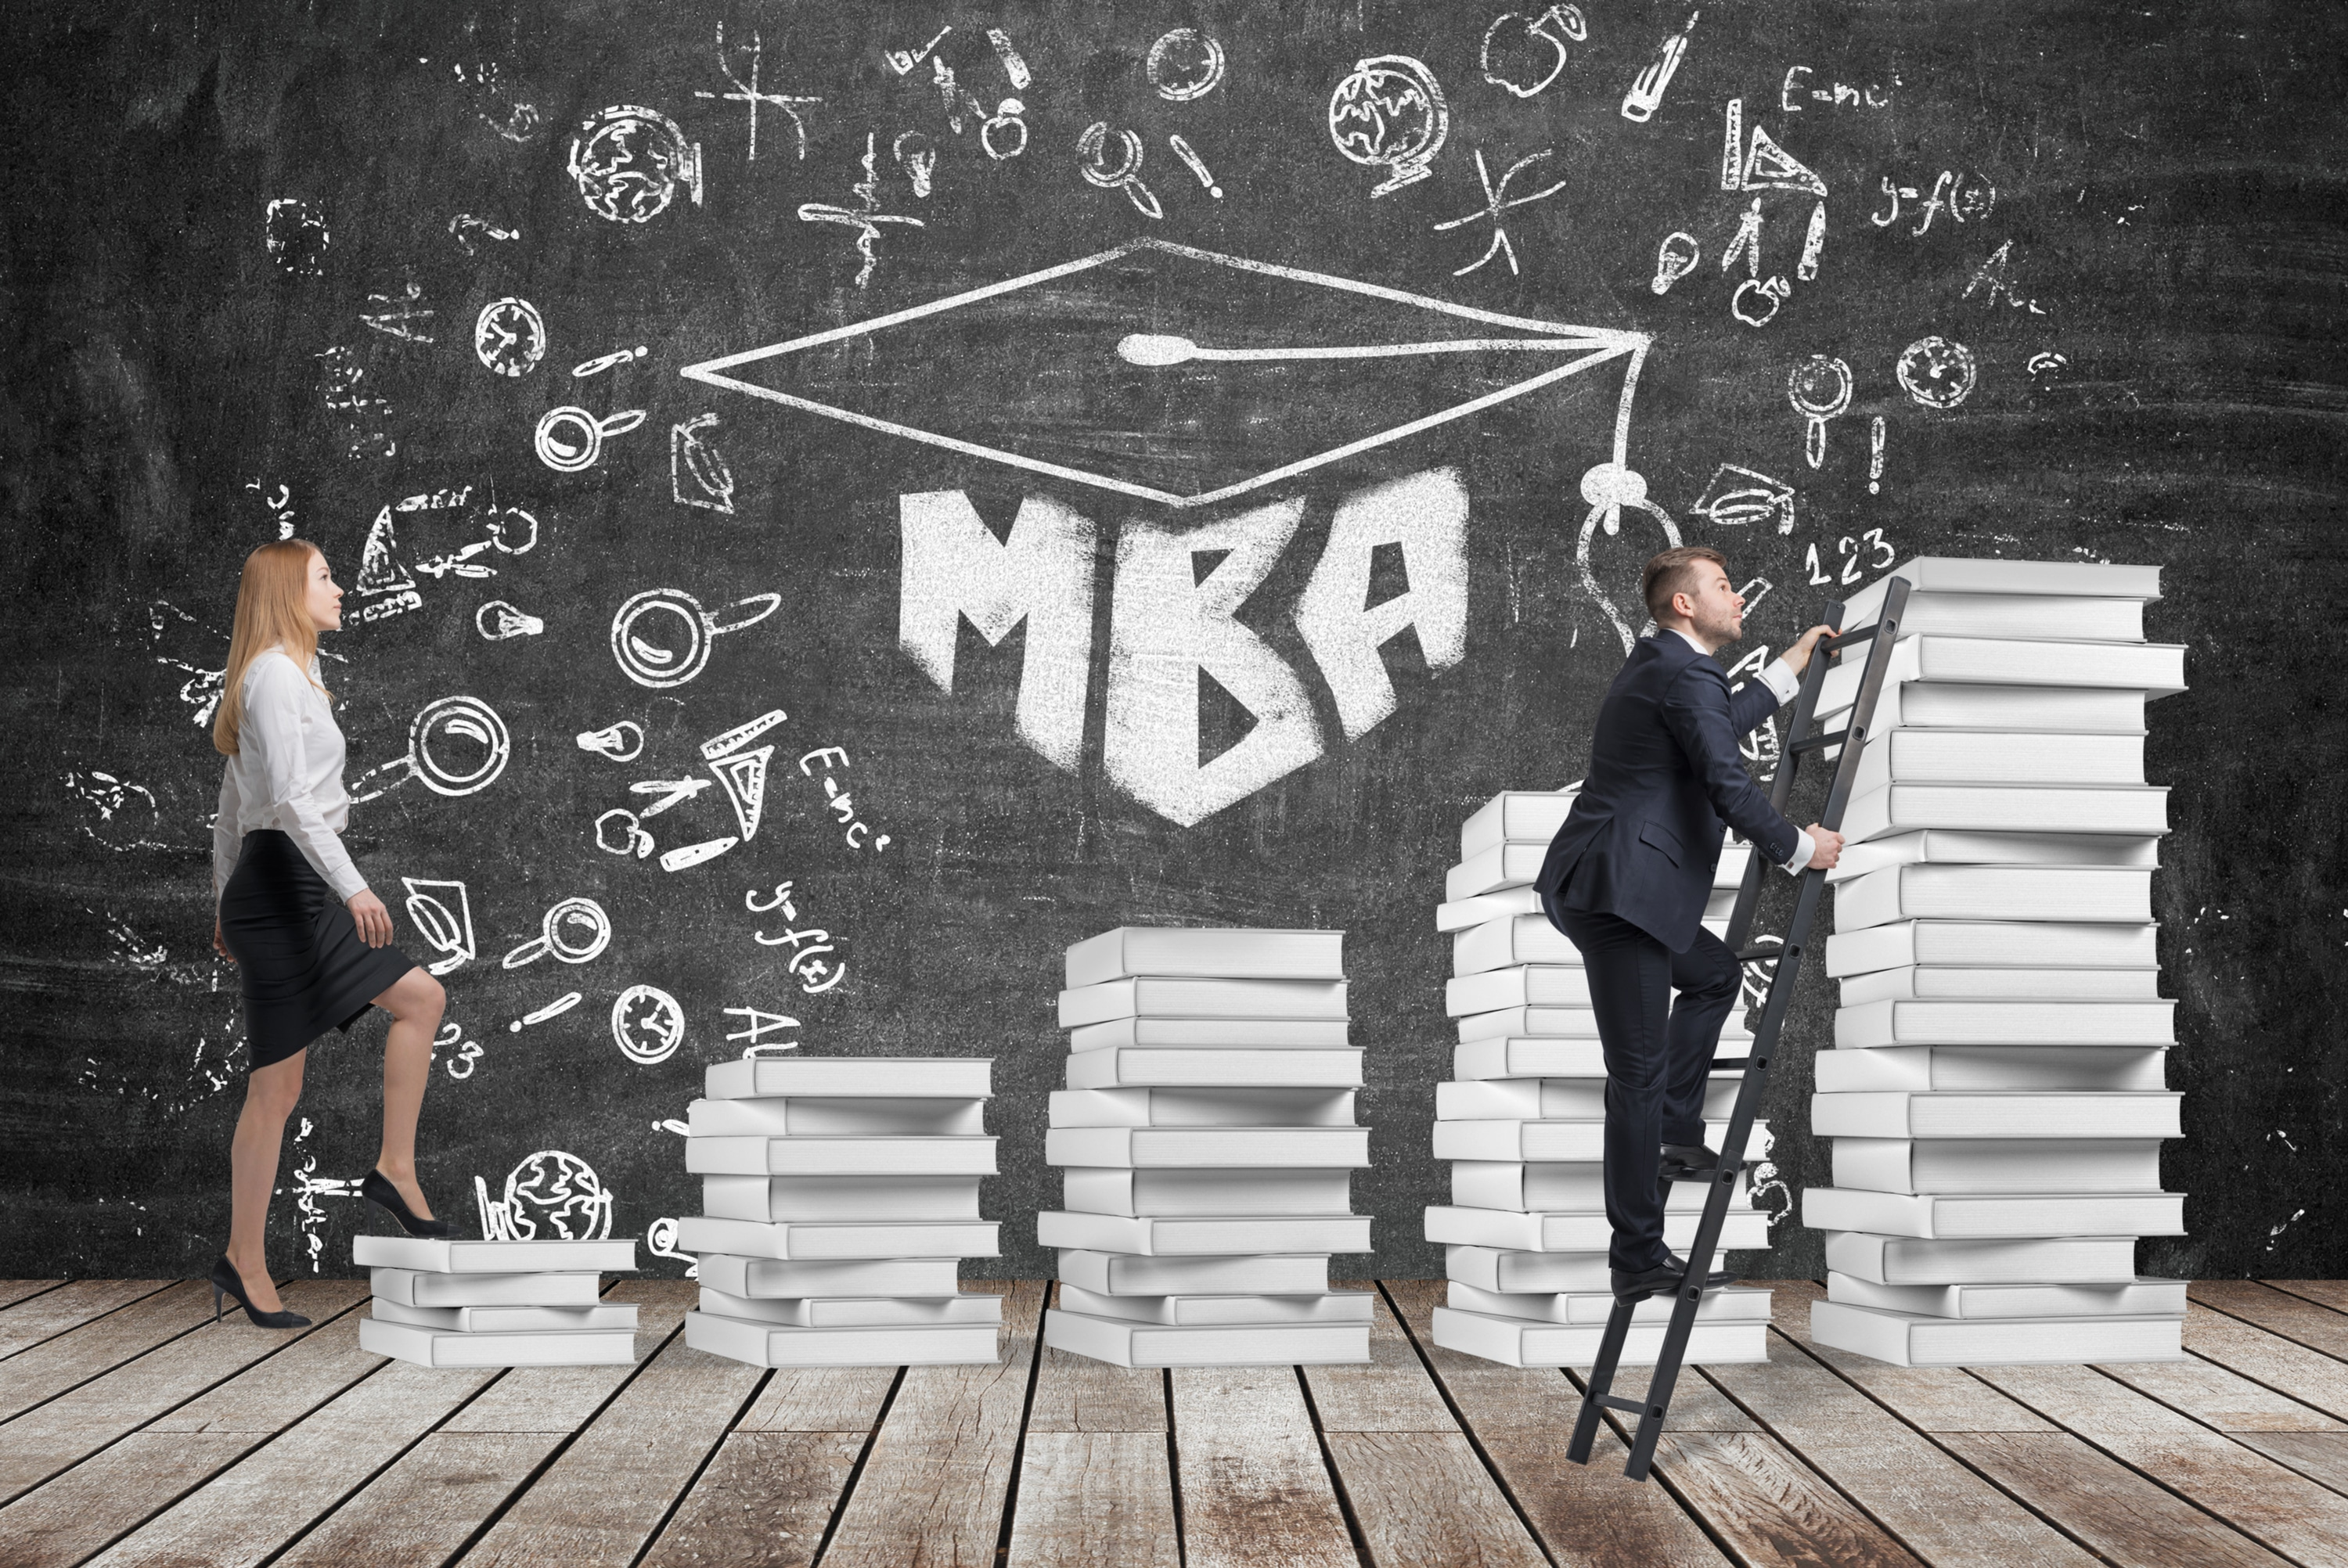 Is Getting an MBA Degree Worth It? - Value & Costs of